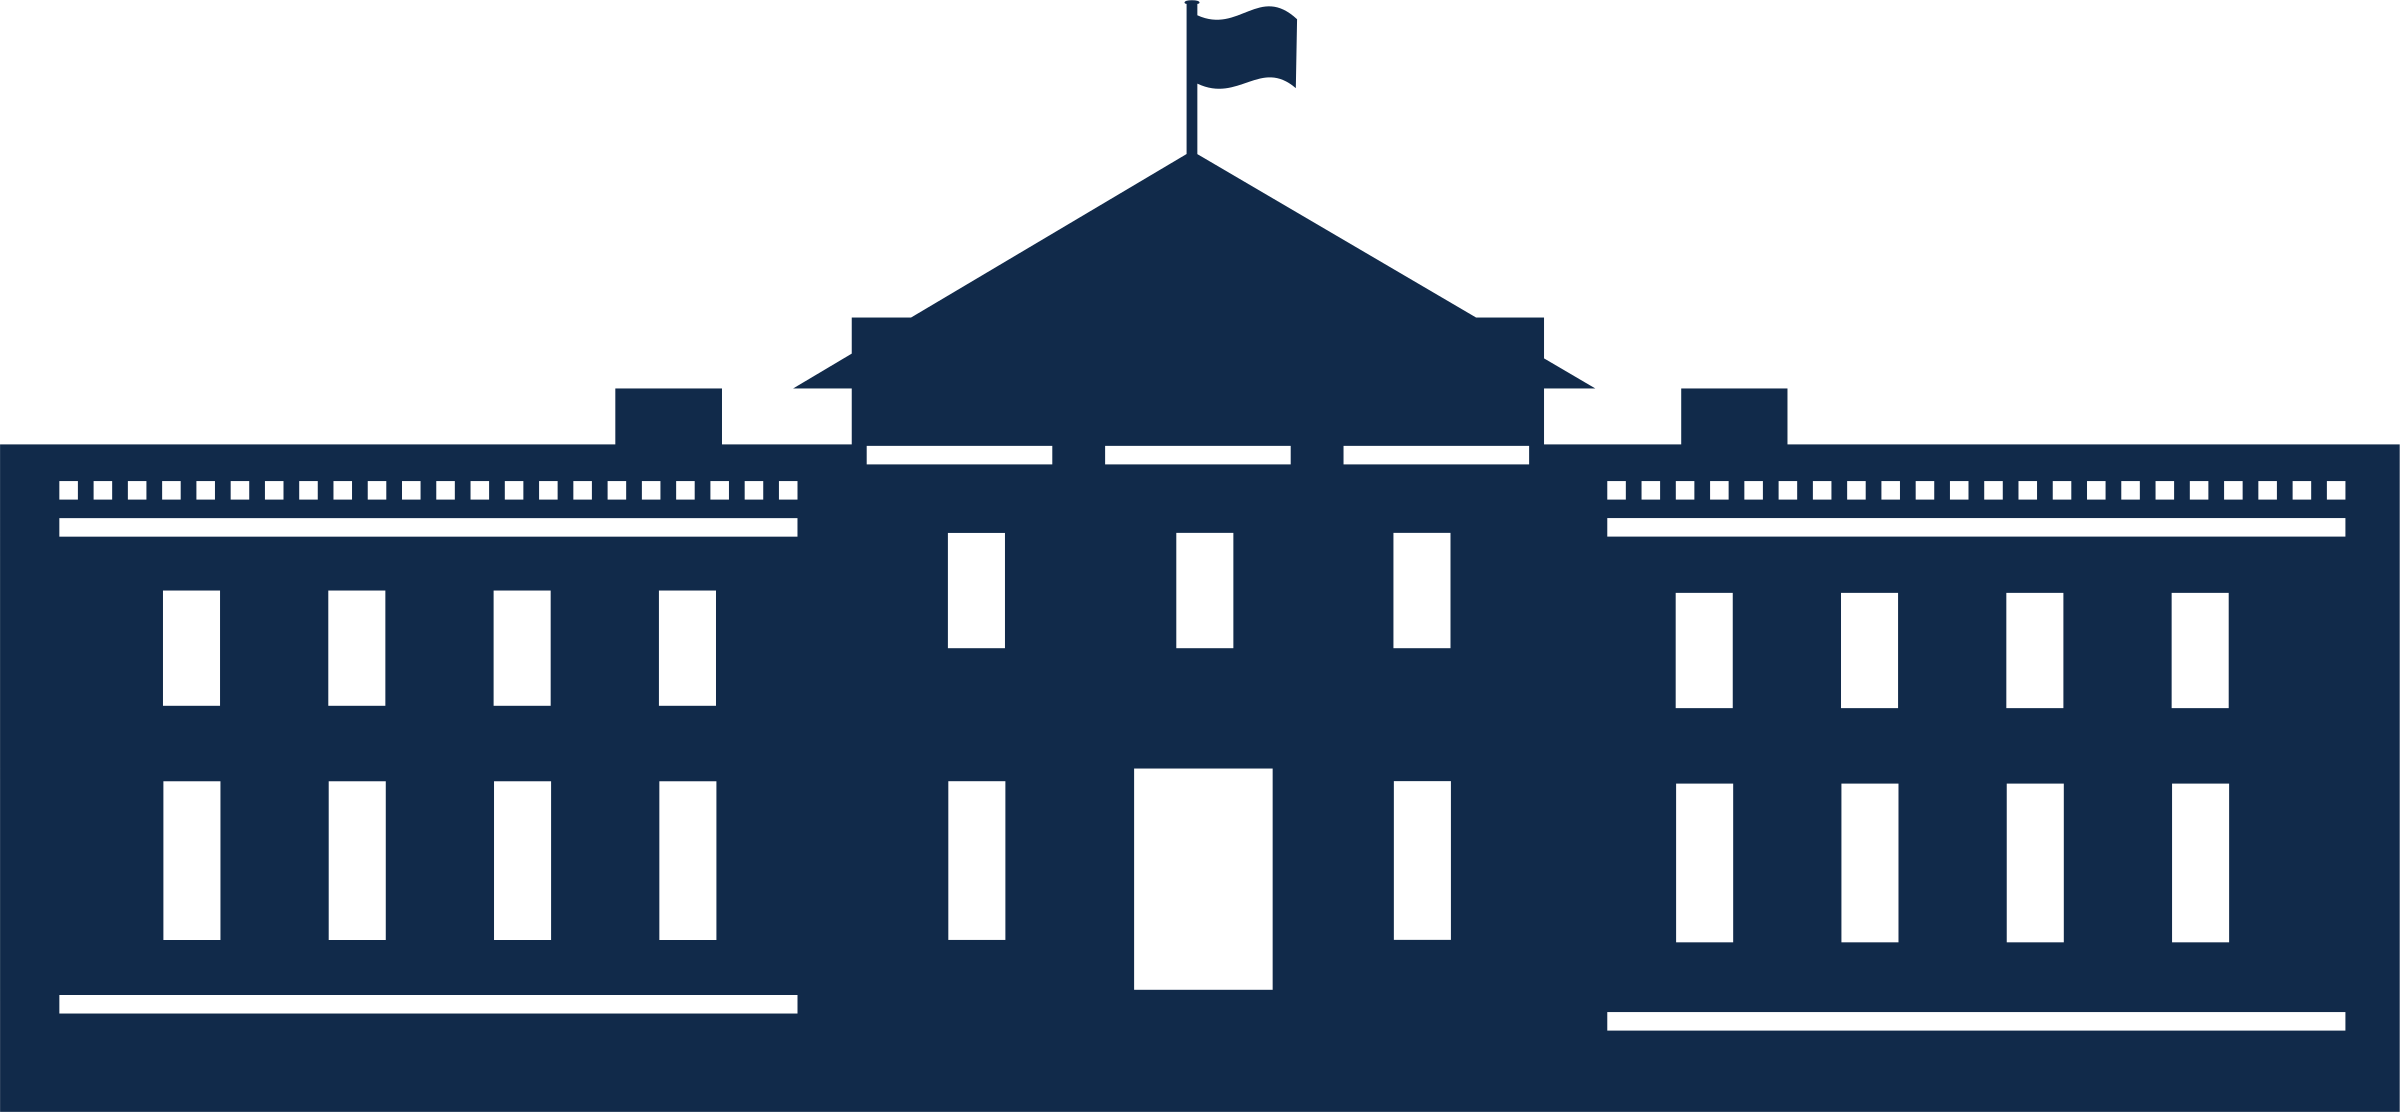 White house clipart no background freeuse Clipart - Whitehouse Silhouette freeuse